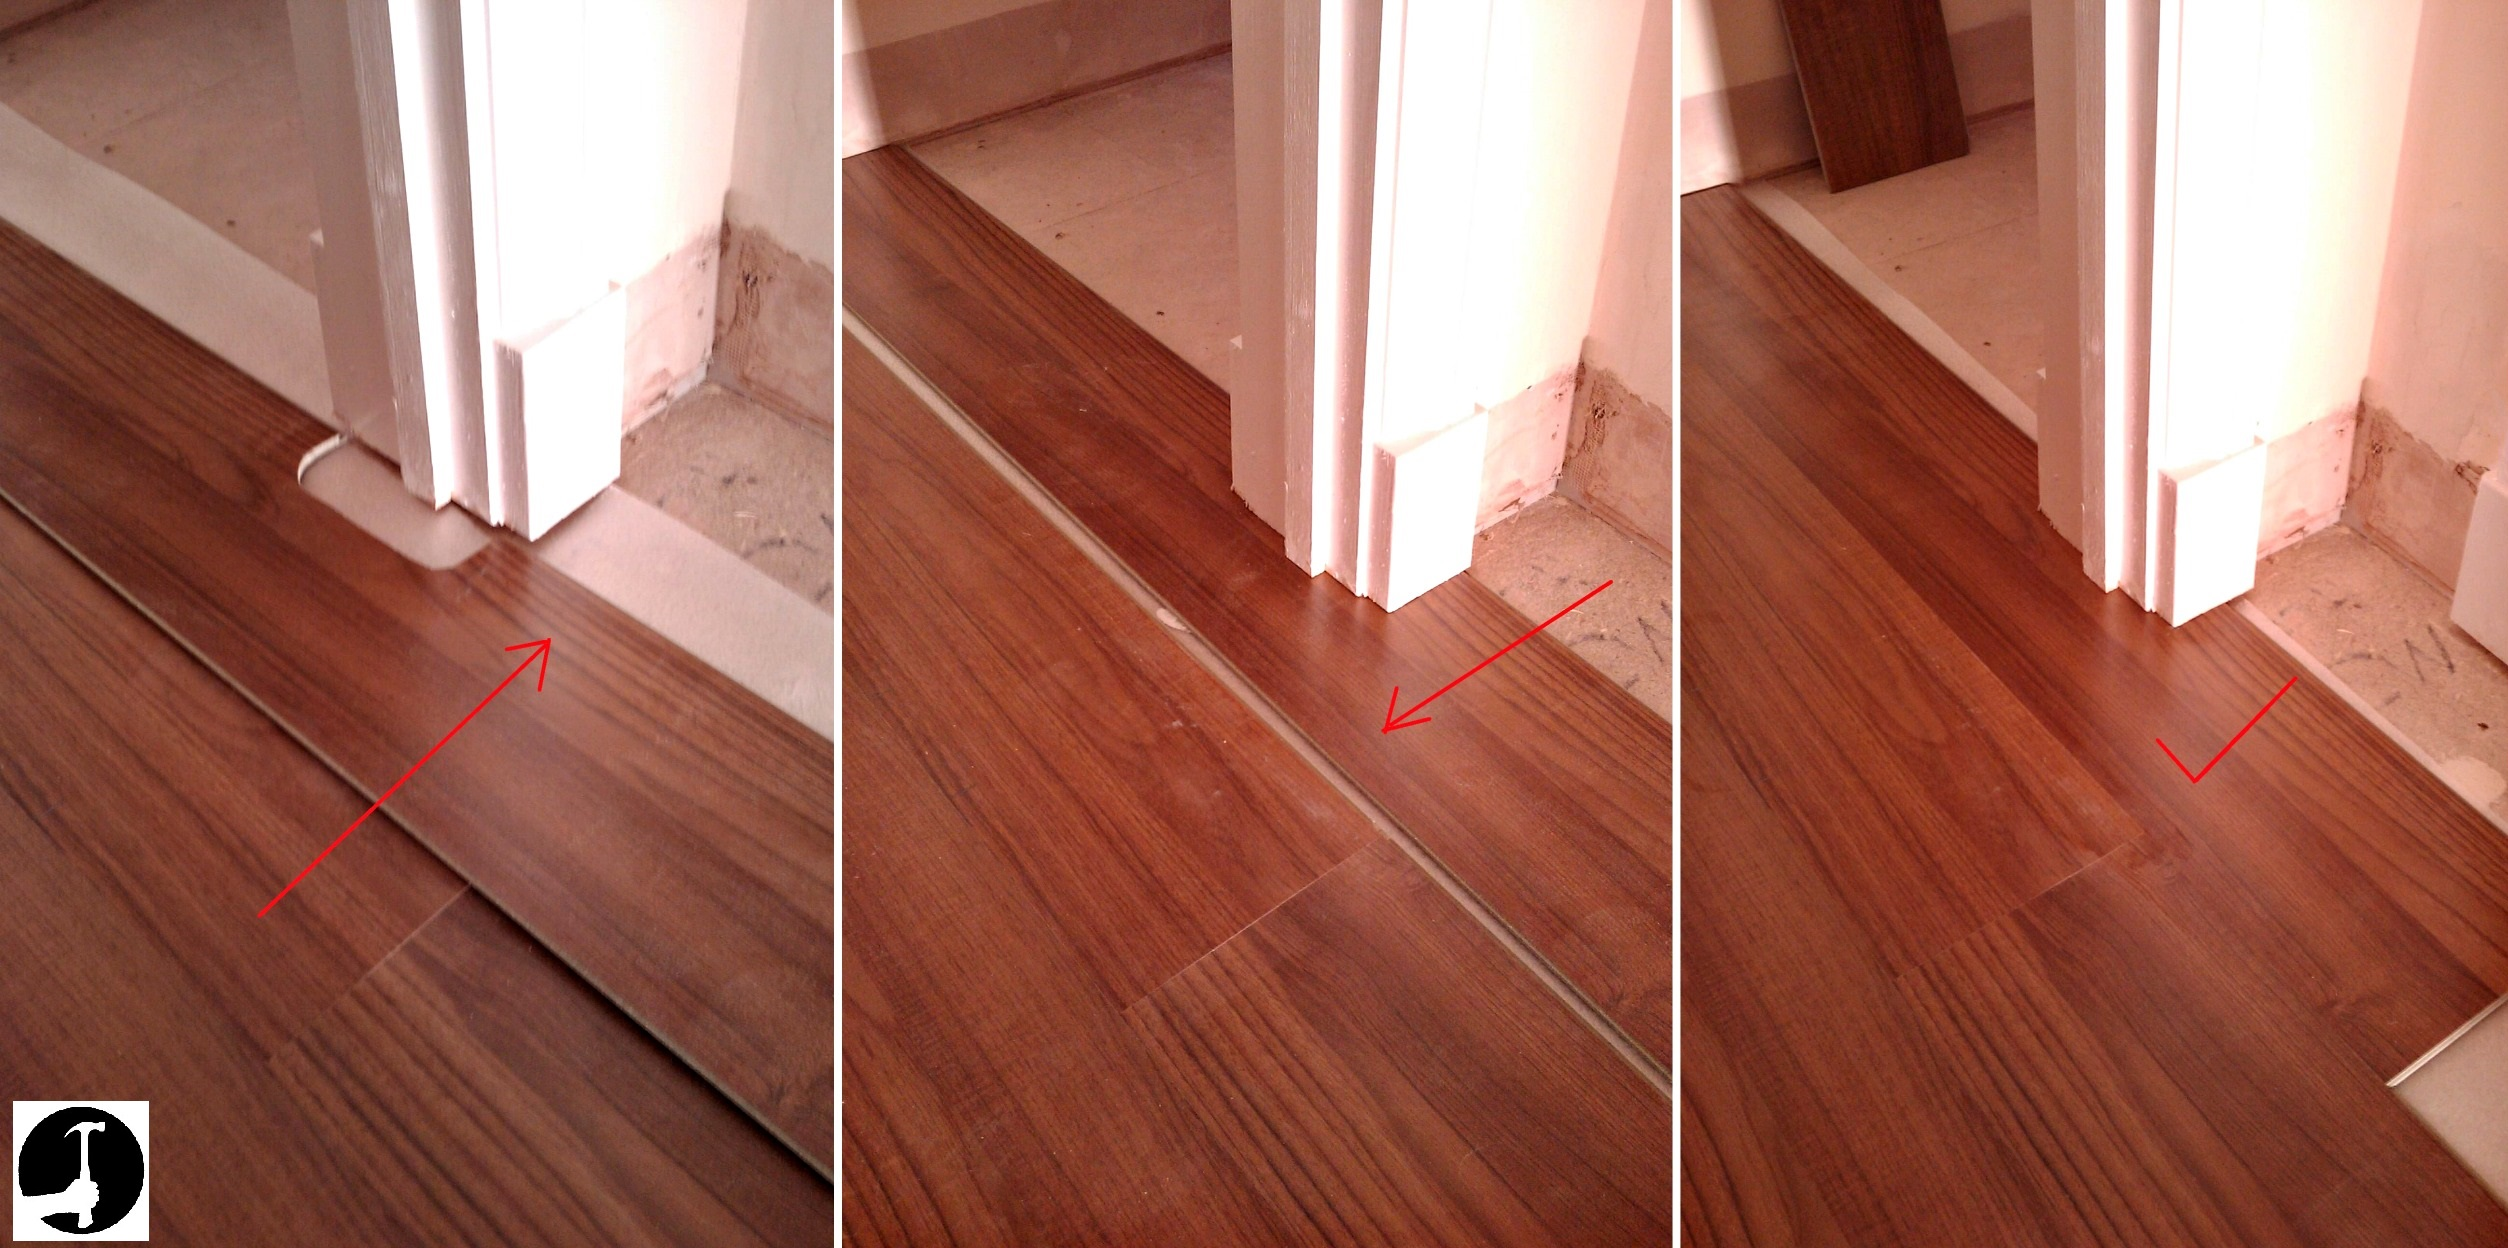 Laying laminate in a doorway How to install laminate flooring in a bathroom